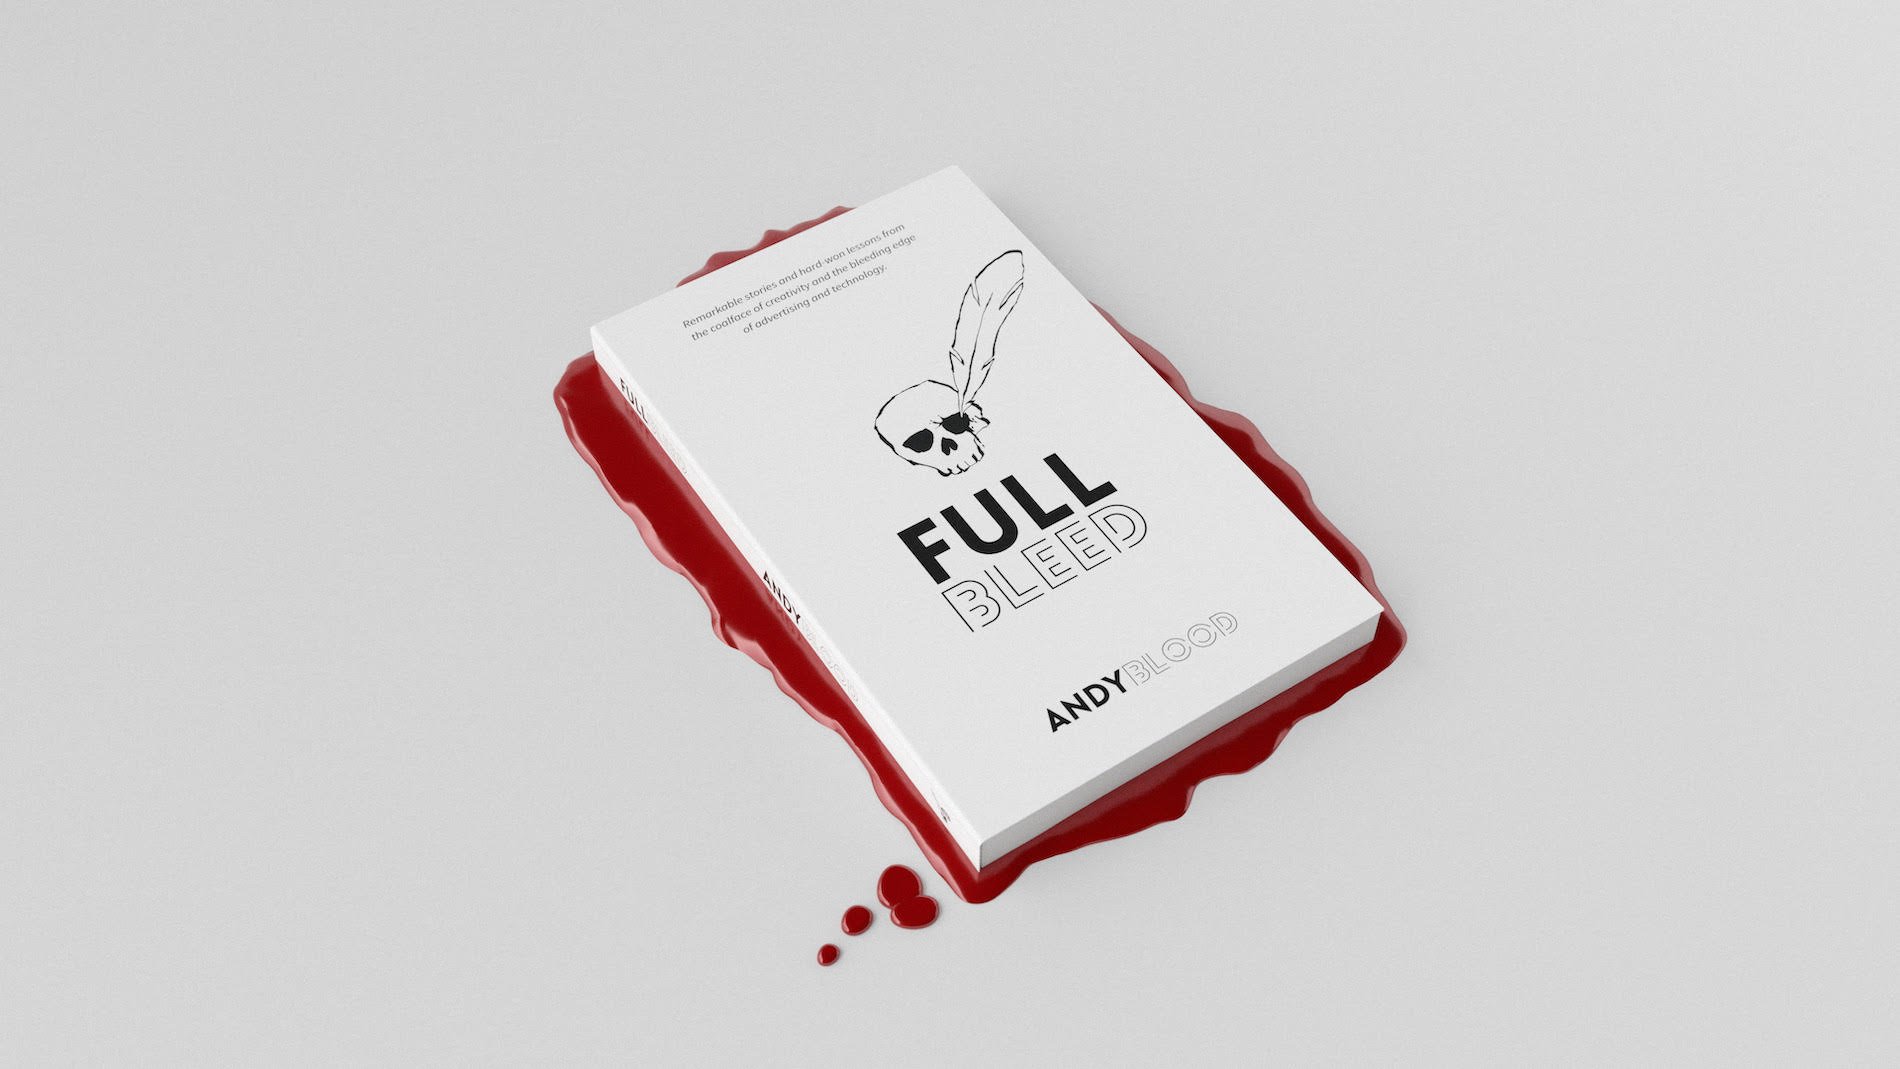 After five years with Facebook Andy Blood departs and launches new book 'Full Bleed'